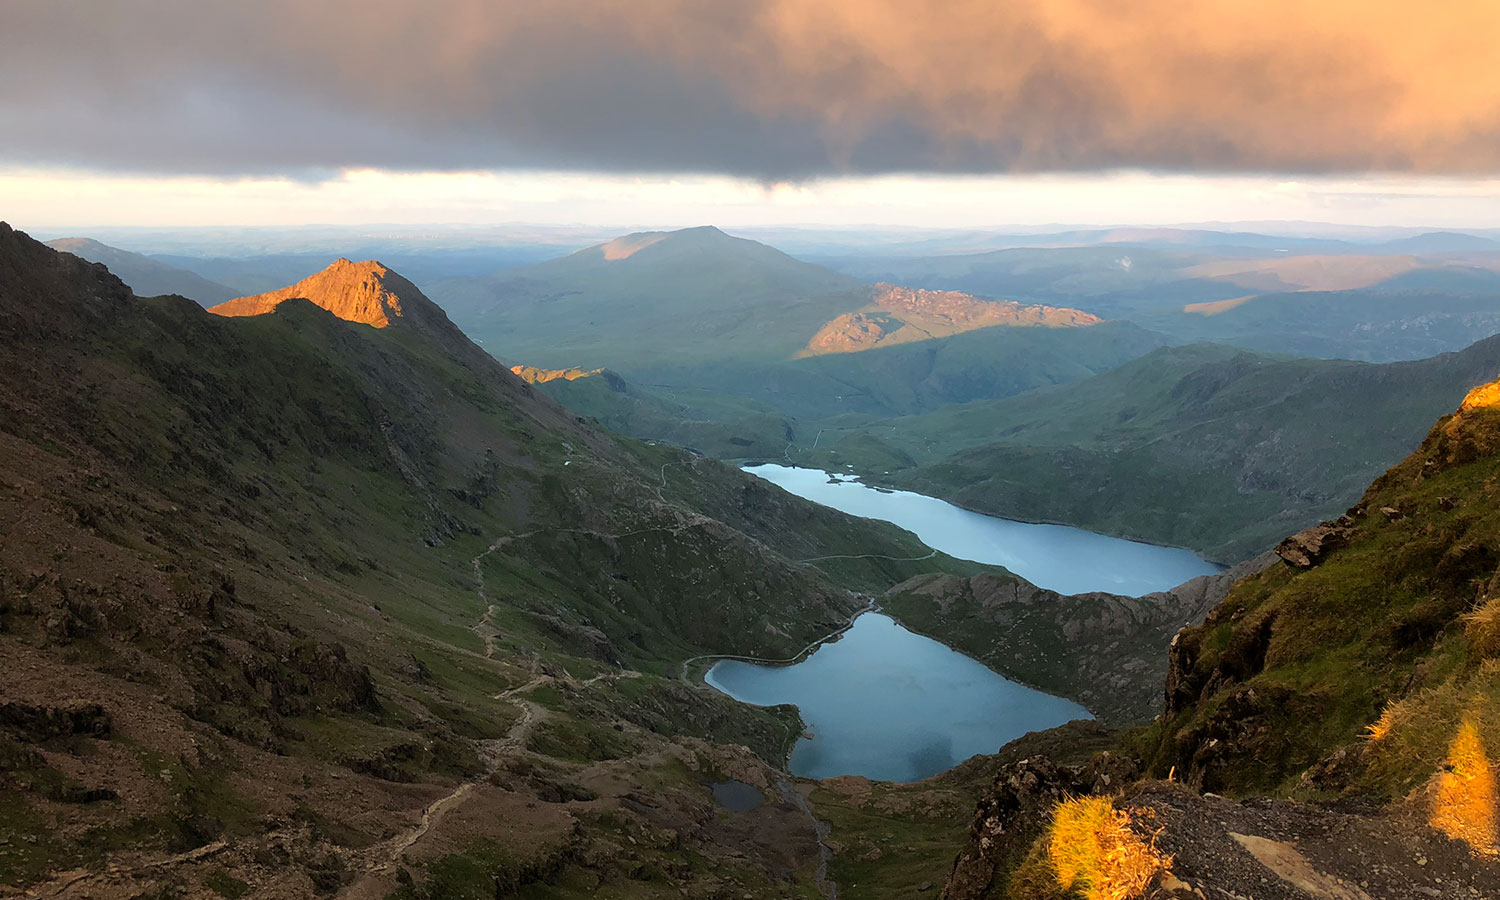 7-Landscape-3rd-place-Snowdonia